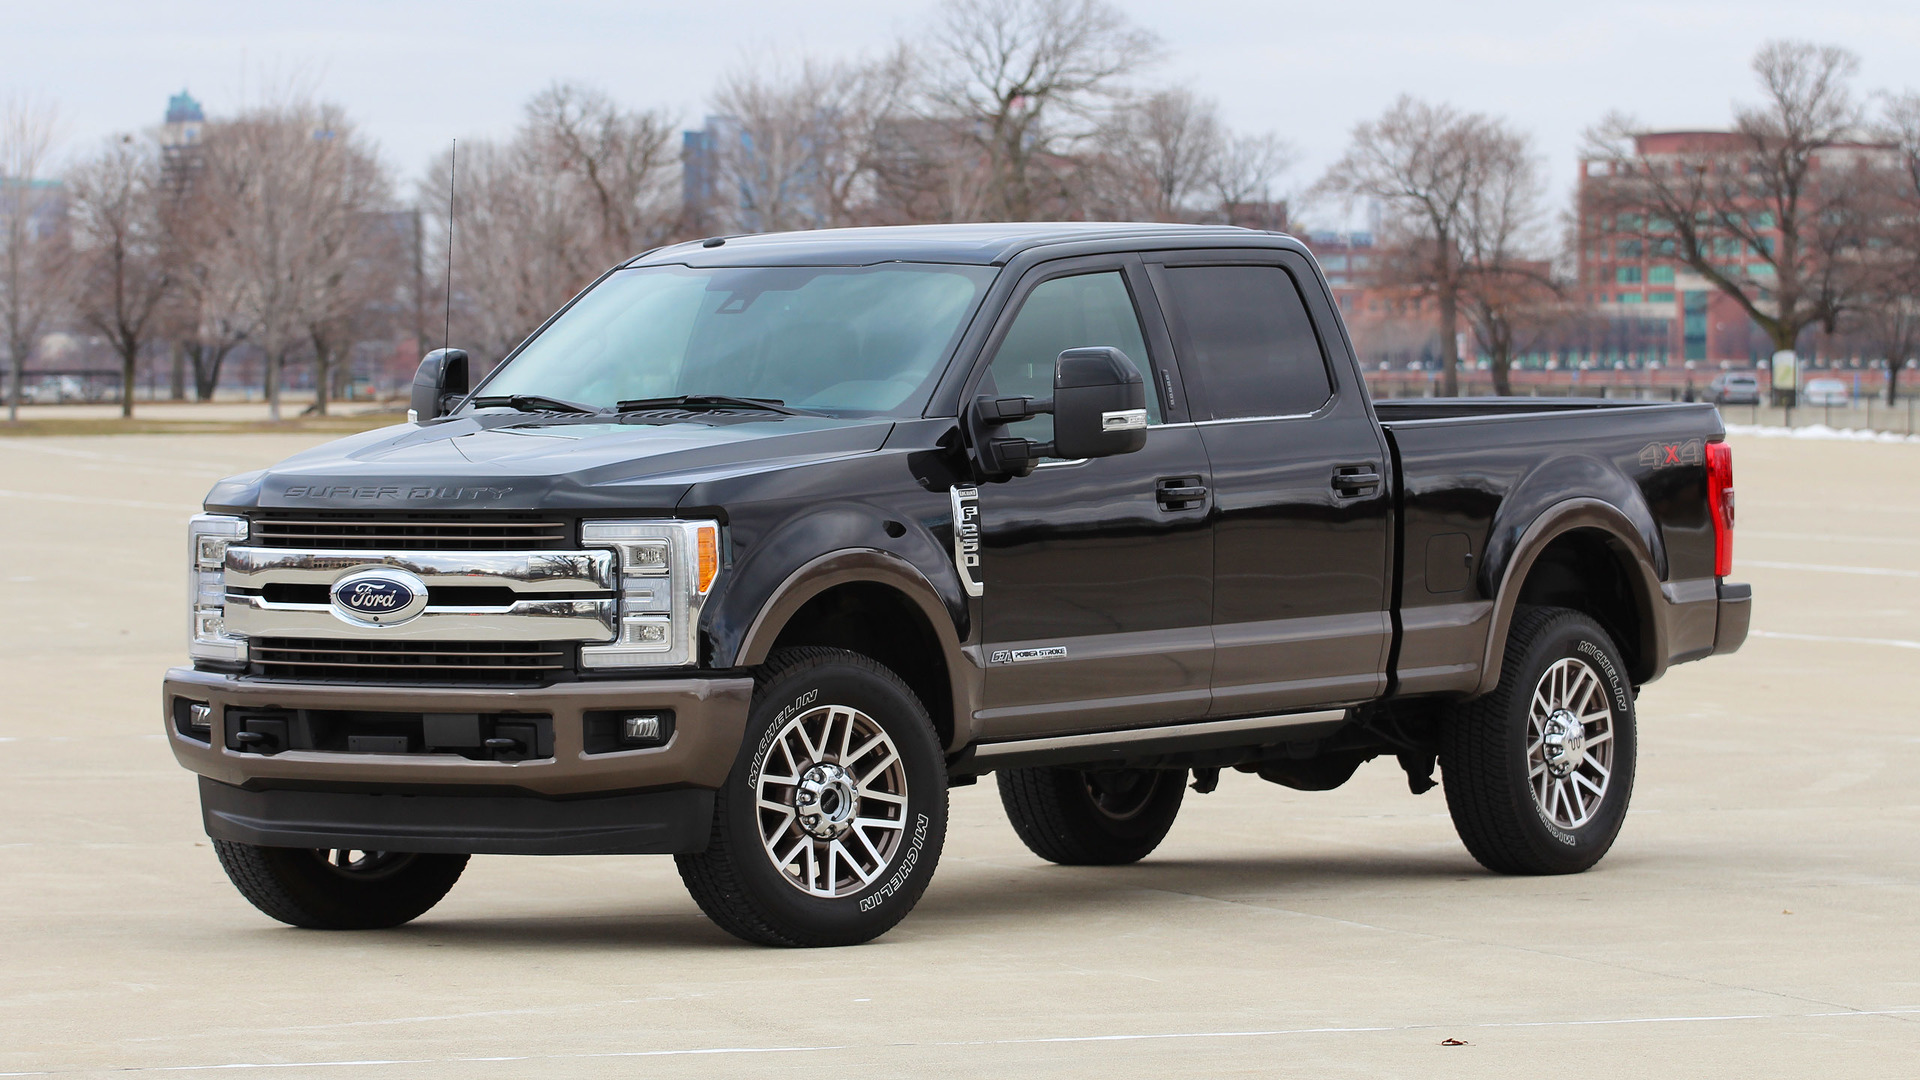 2017 ford f 250 super duty review rockin the ranch not the suburbs